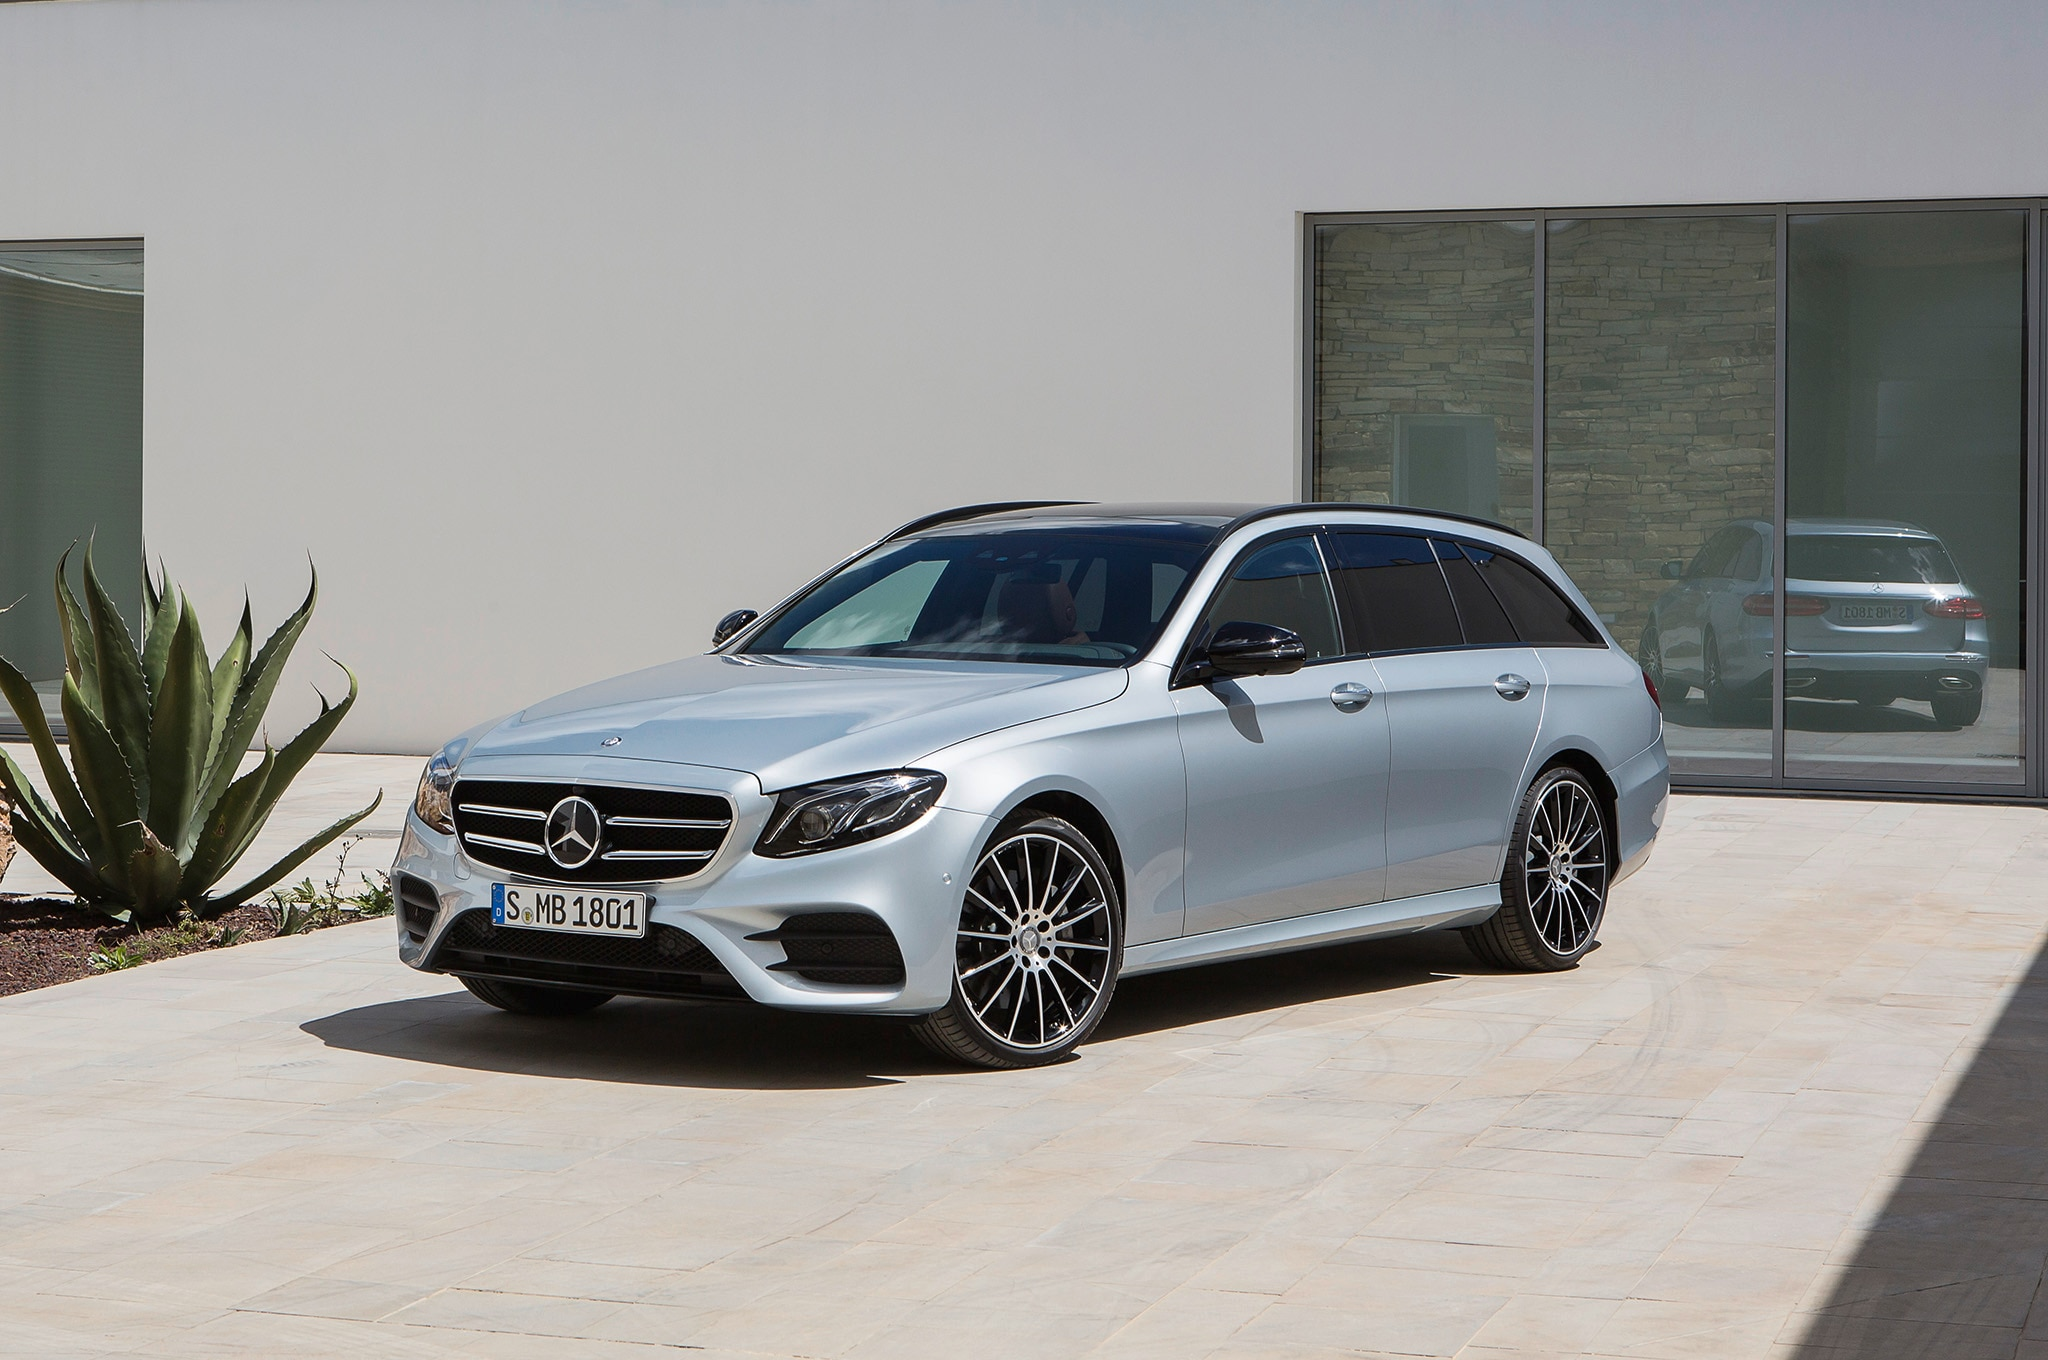 2017 mercedes benz e400 4matic wagon announced for Pictures of a mercedes benz